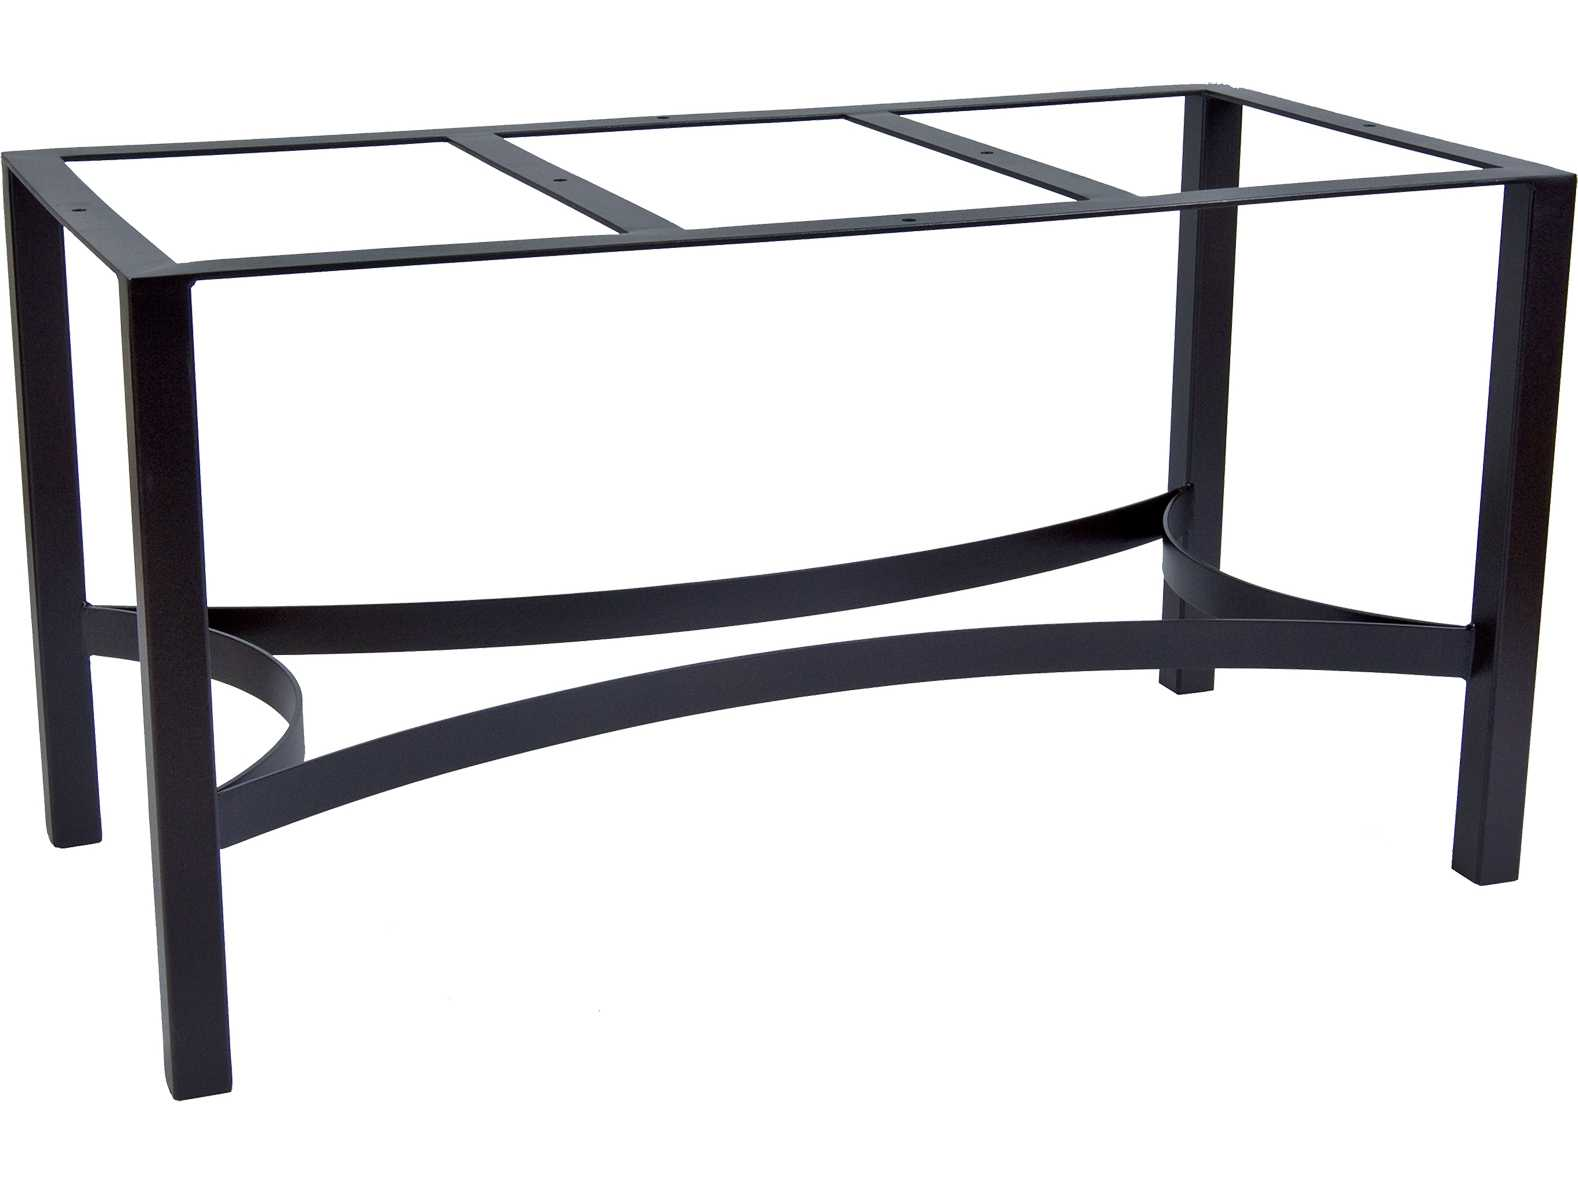 Ow Lee Palazzo Wrought Iron Dining Table Rectangular Base Ow1dt07